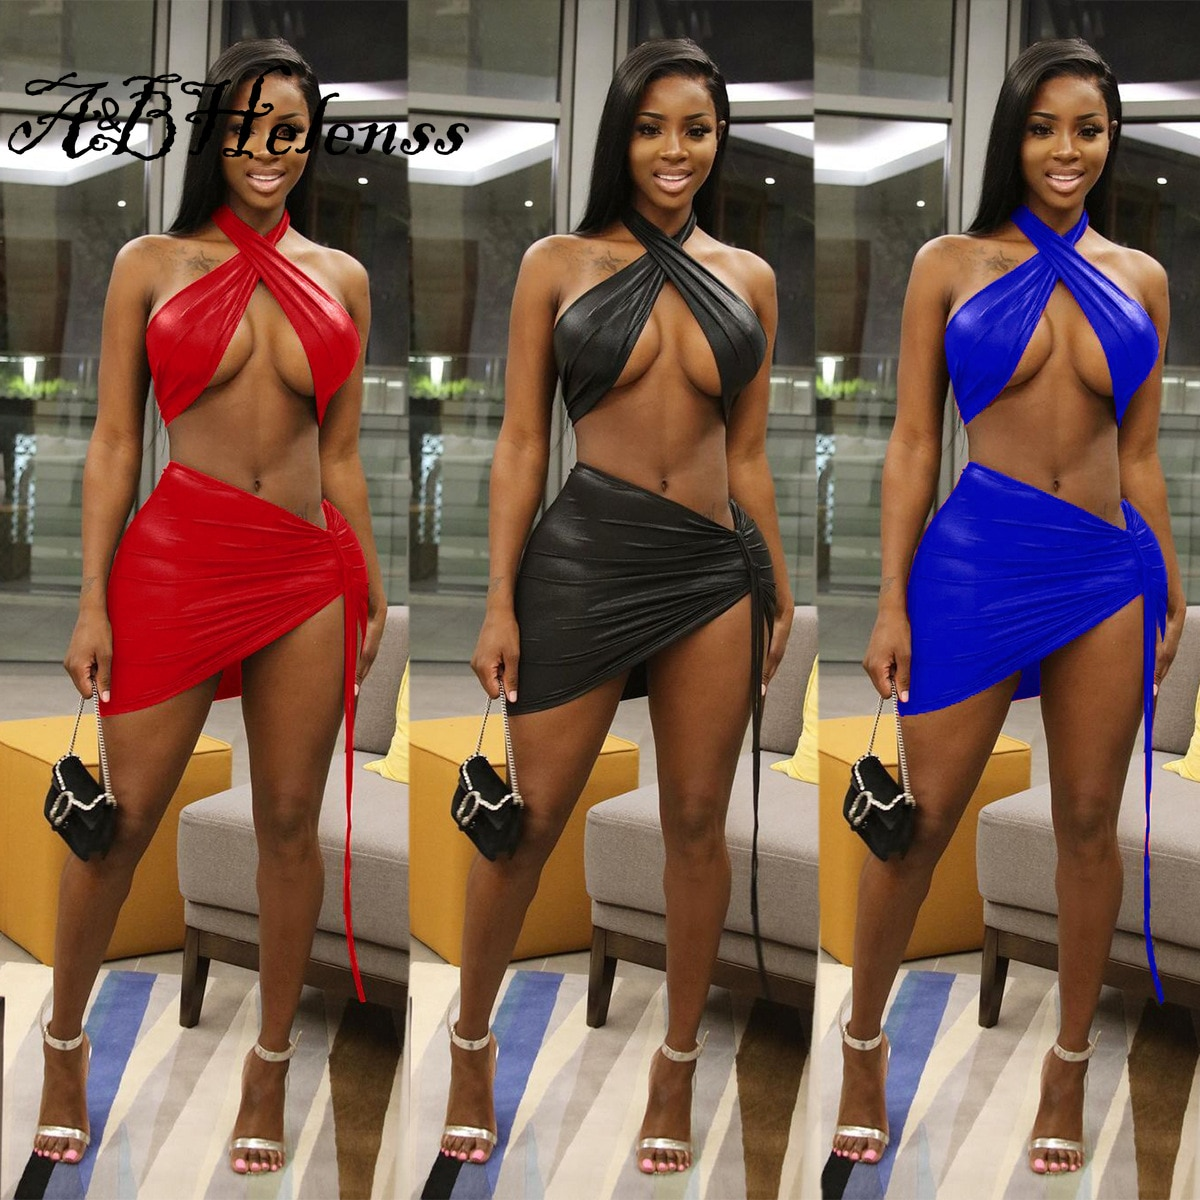 A&BHelenss PU Leather Sexy Halter Crop Top And Lace Up Bodycon Mini Skirt Two Piece Set Dress Fashion Y2k Night Club Beach Suit